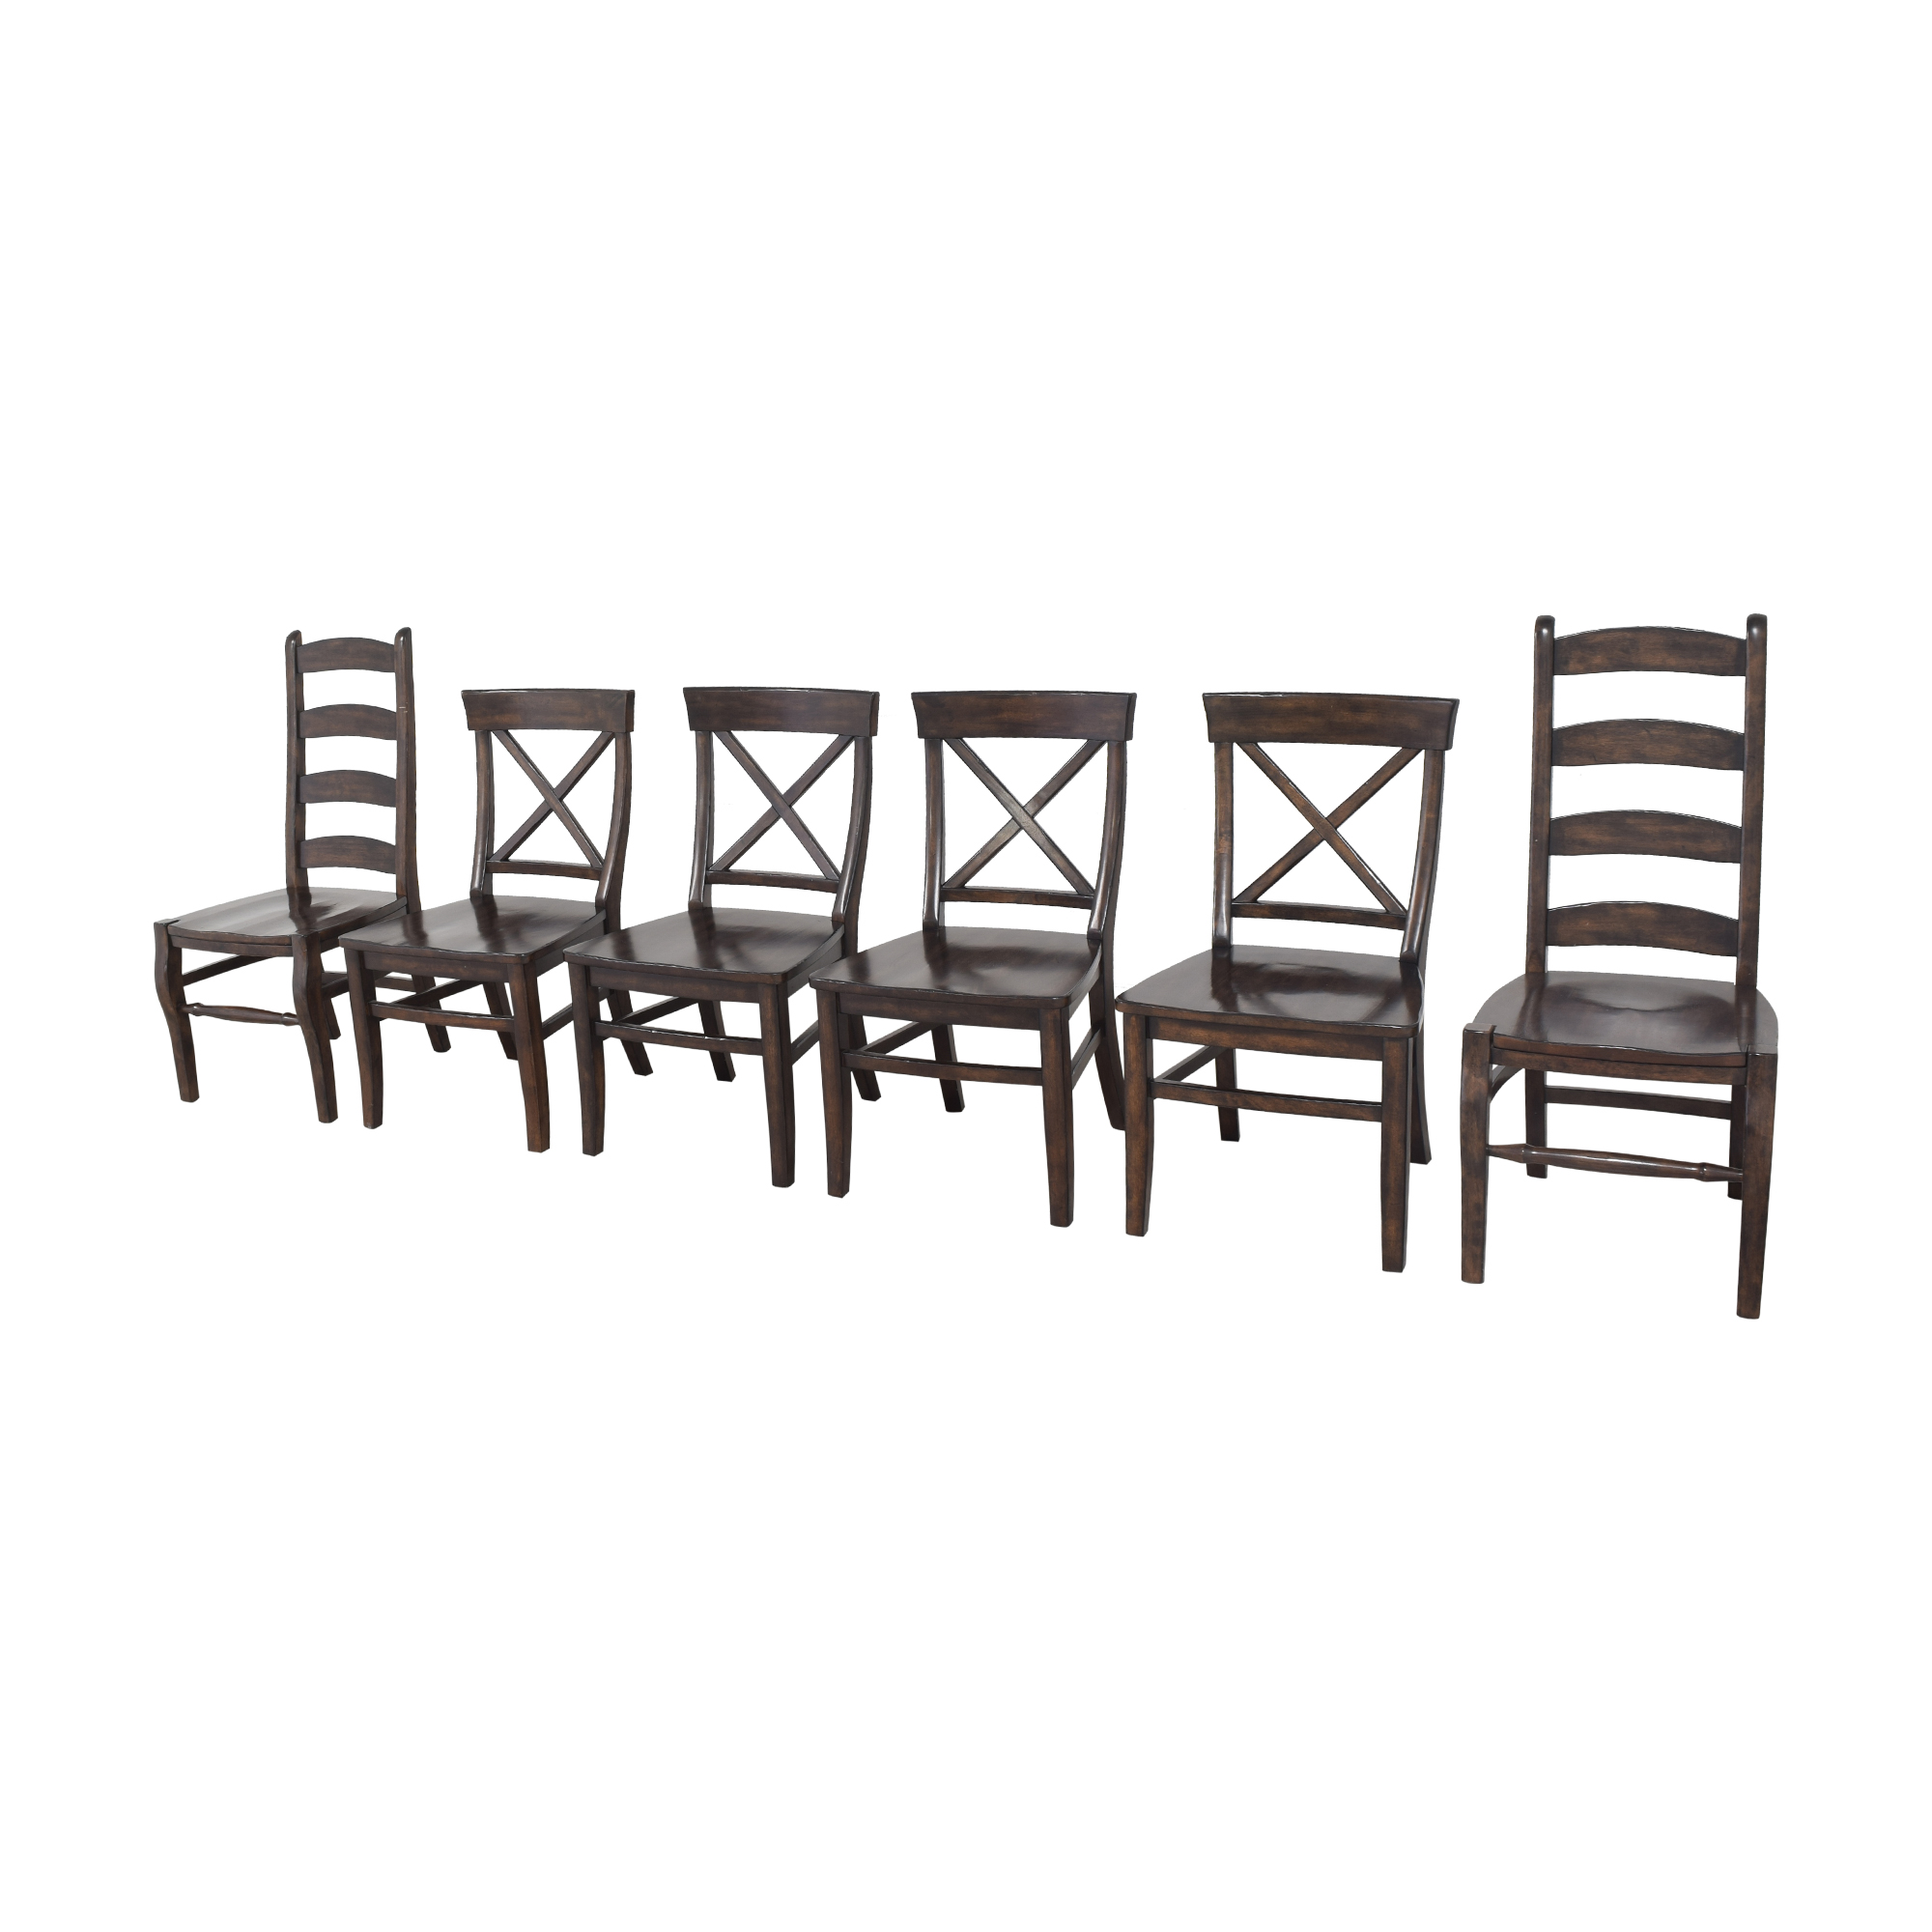 Pottery Barn Pottery Barn Aaron and Wynn Ladderback Dining Chairs nyc